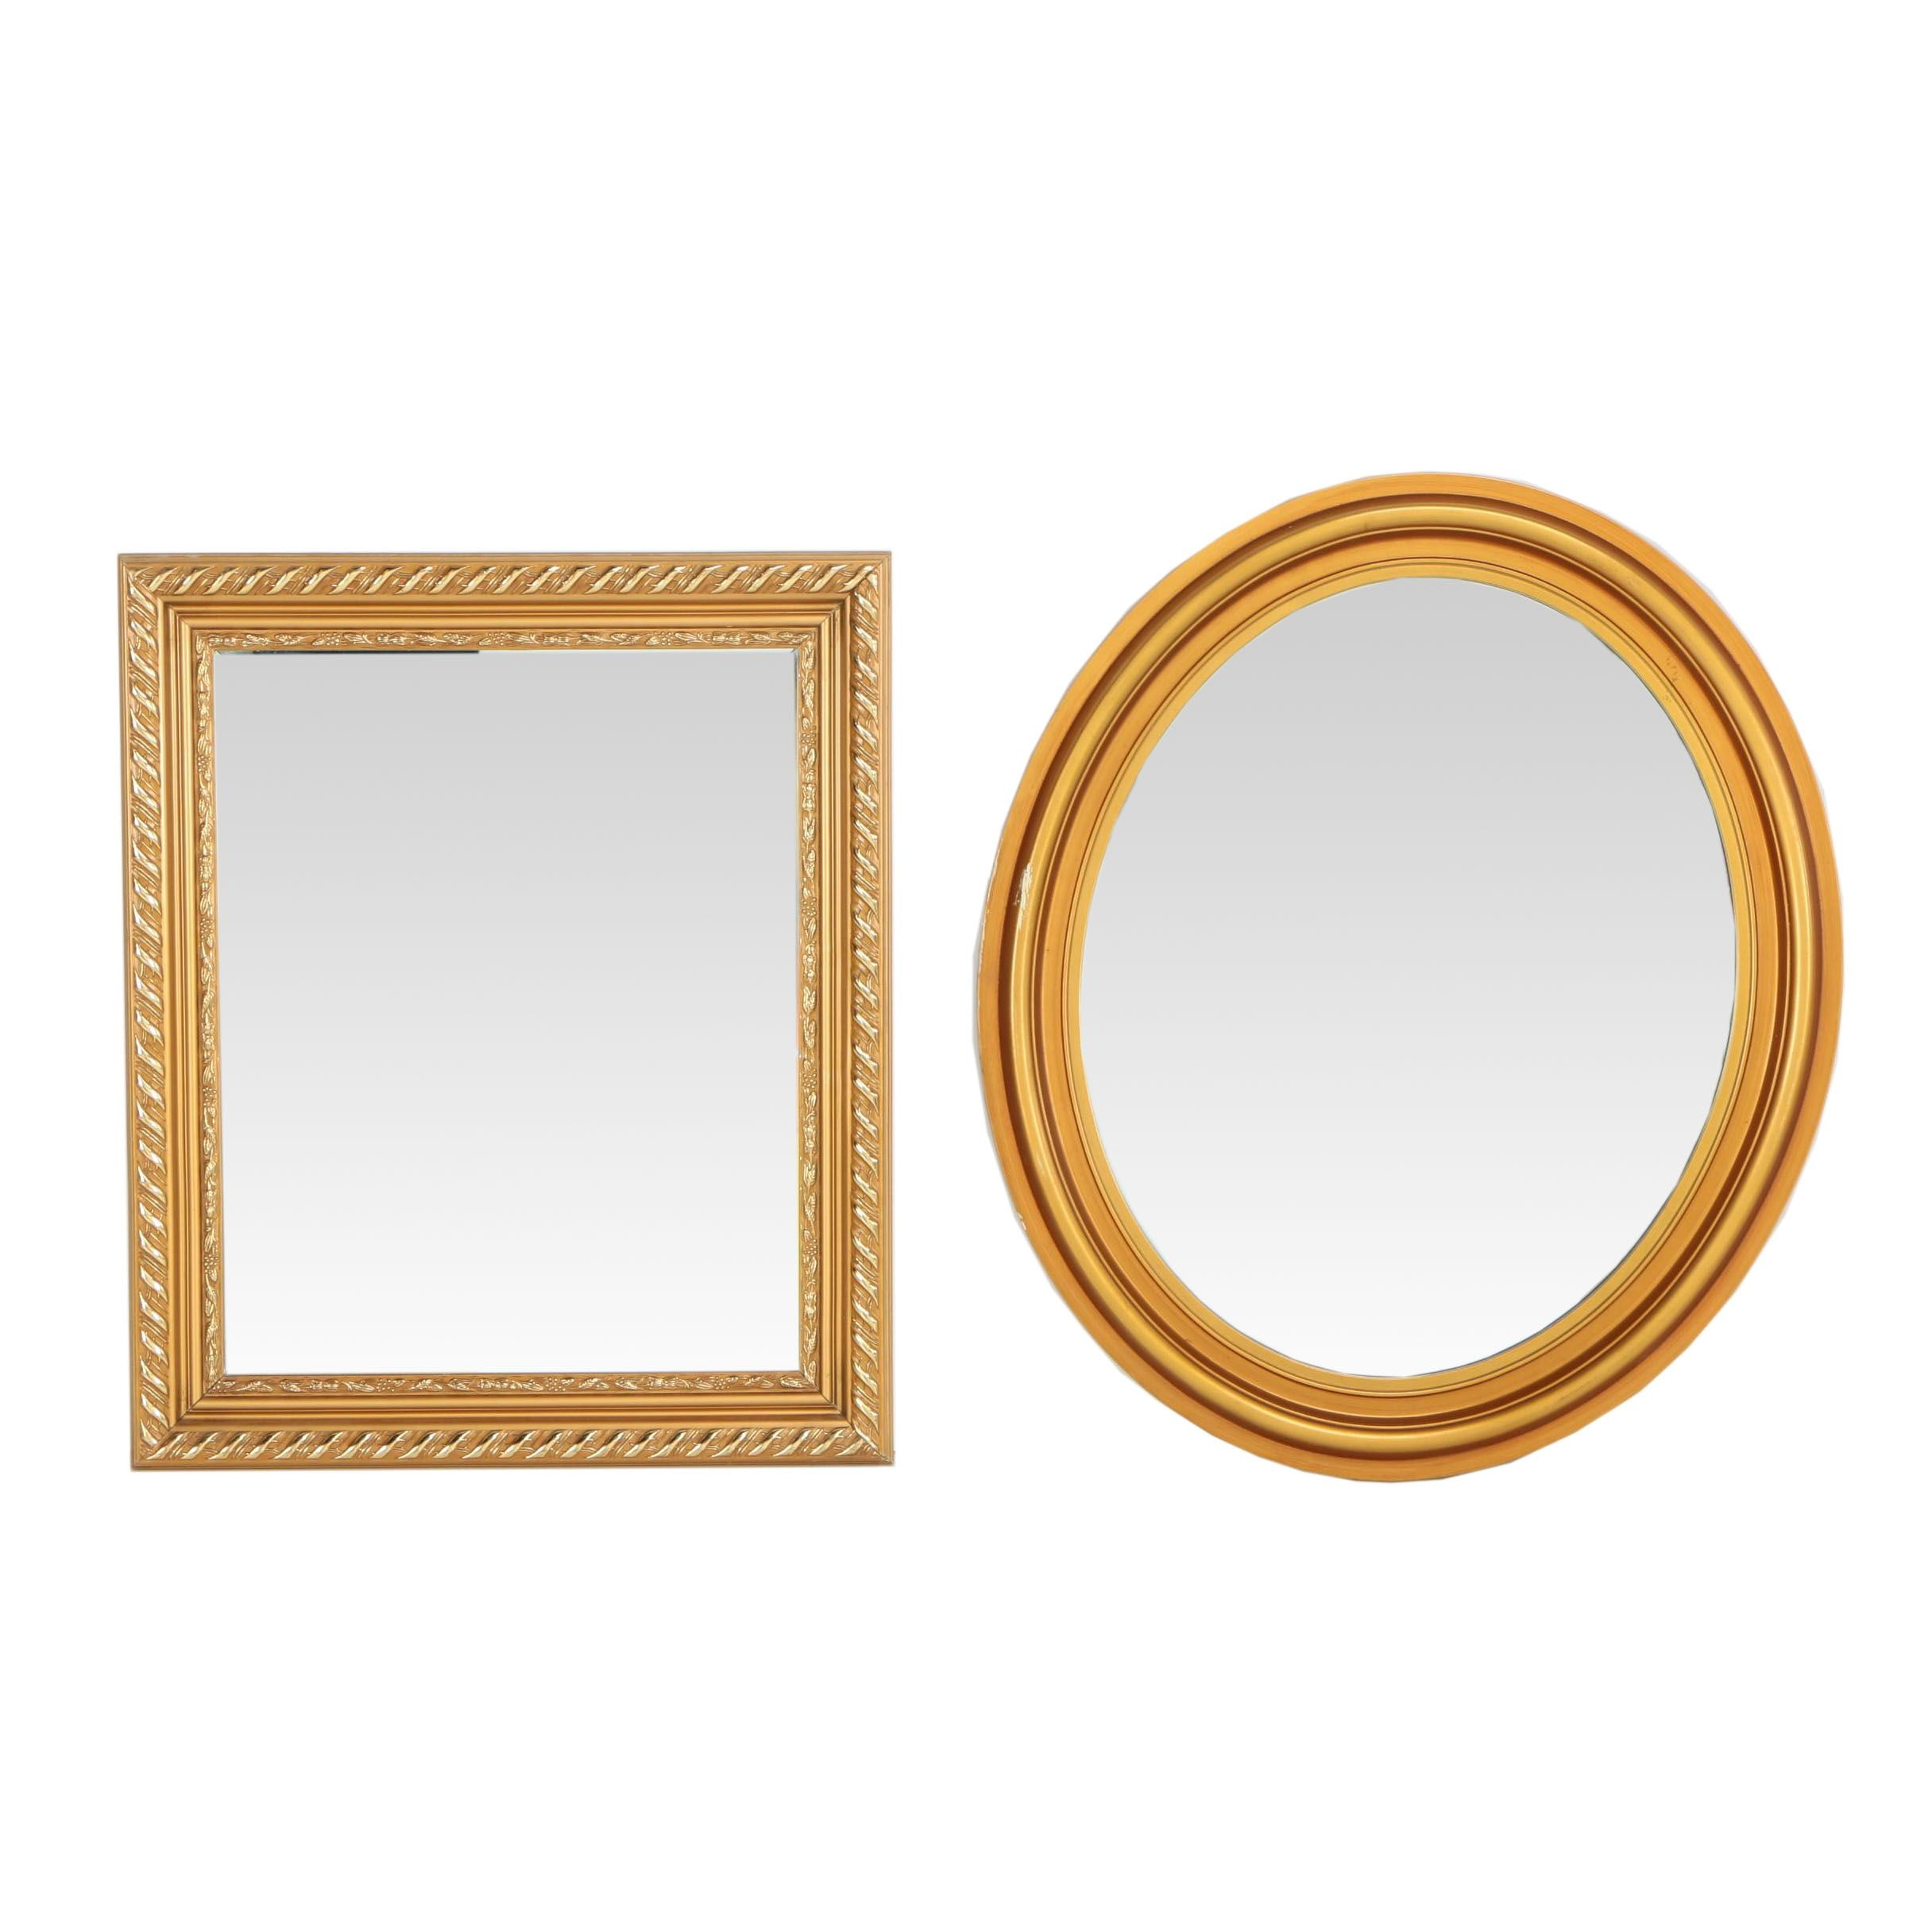 Neoclassical Style Giltwood Oval and Rectangular Wall Mirrors